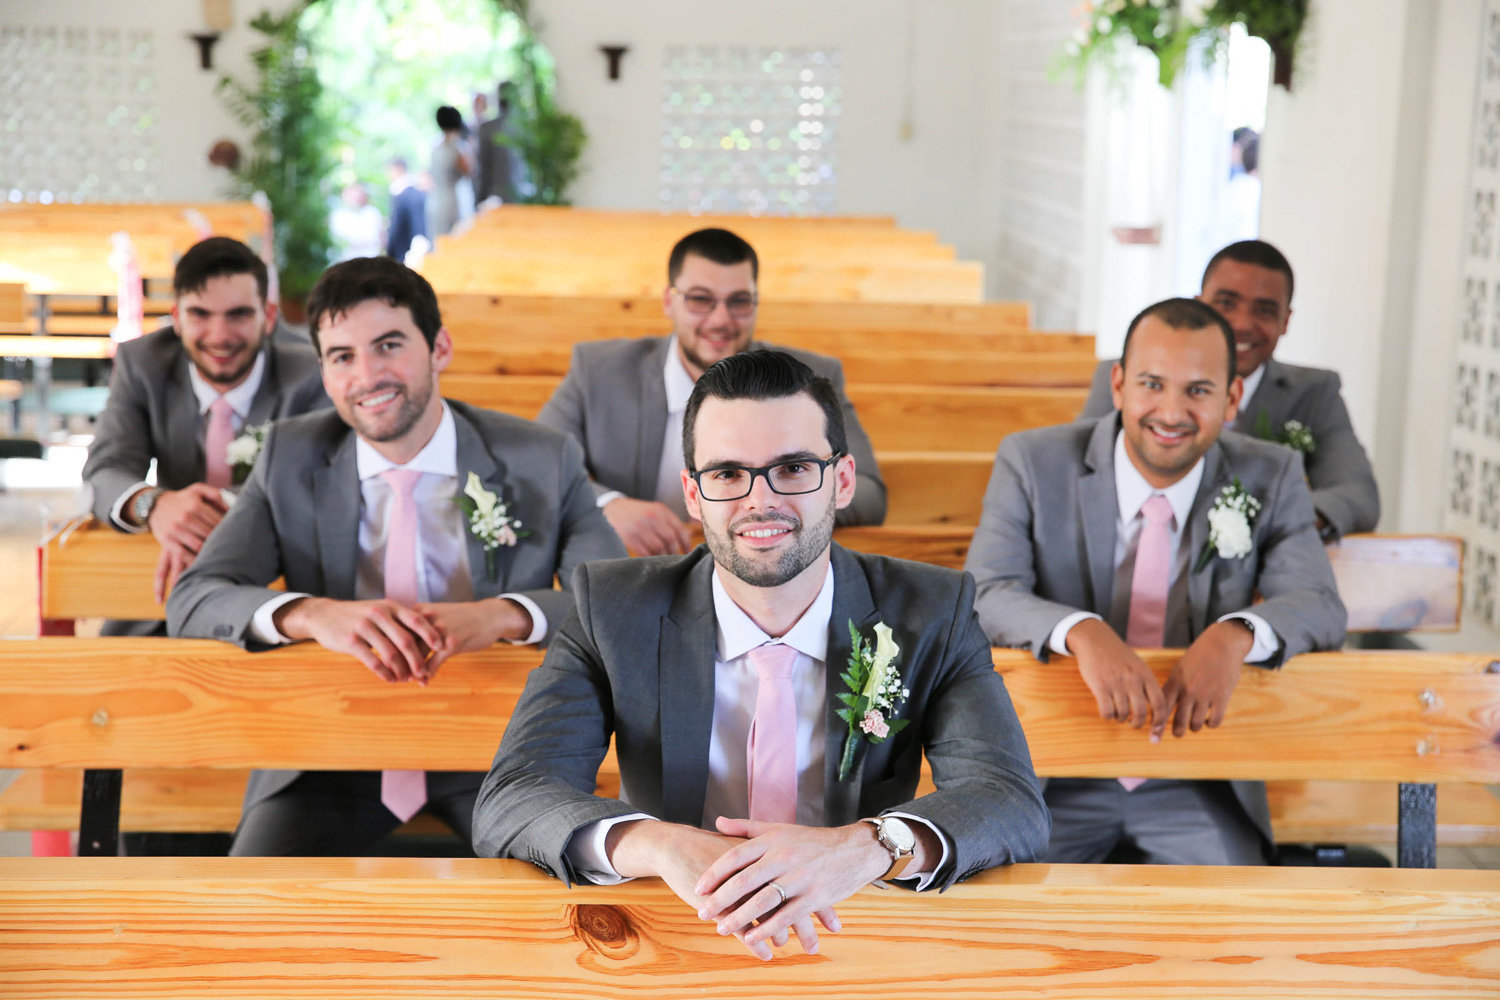 Groom's party in church pews. Photo by Ross Photography, Trinidad, W.I..